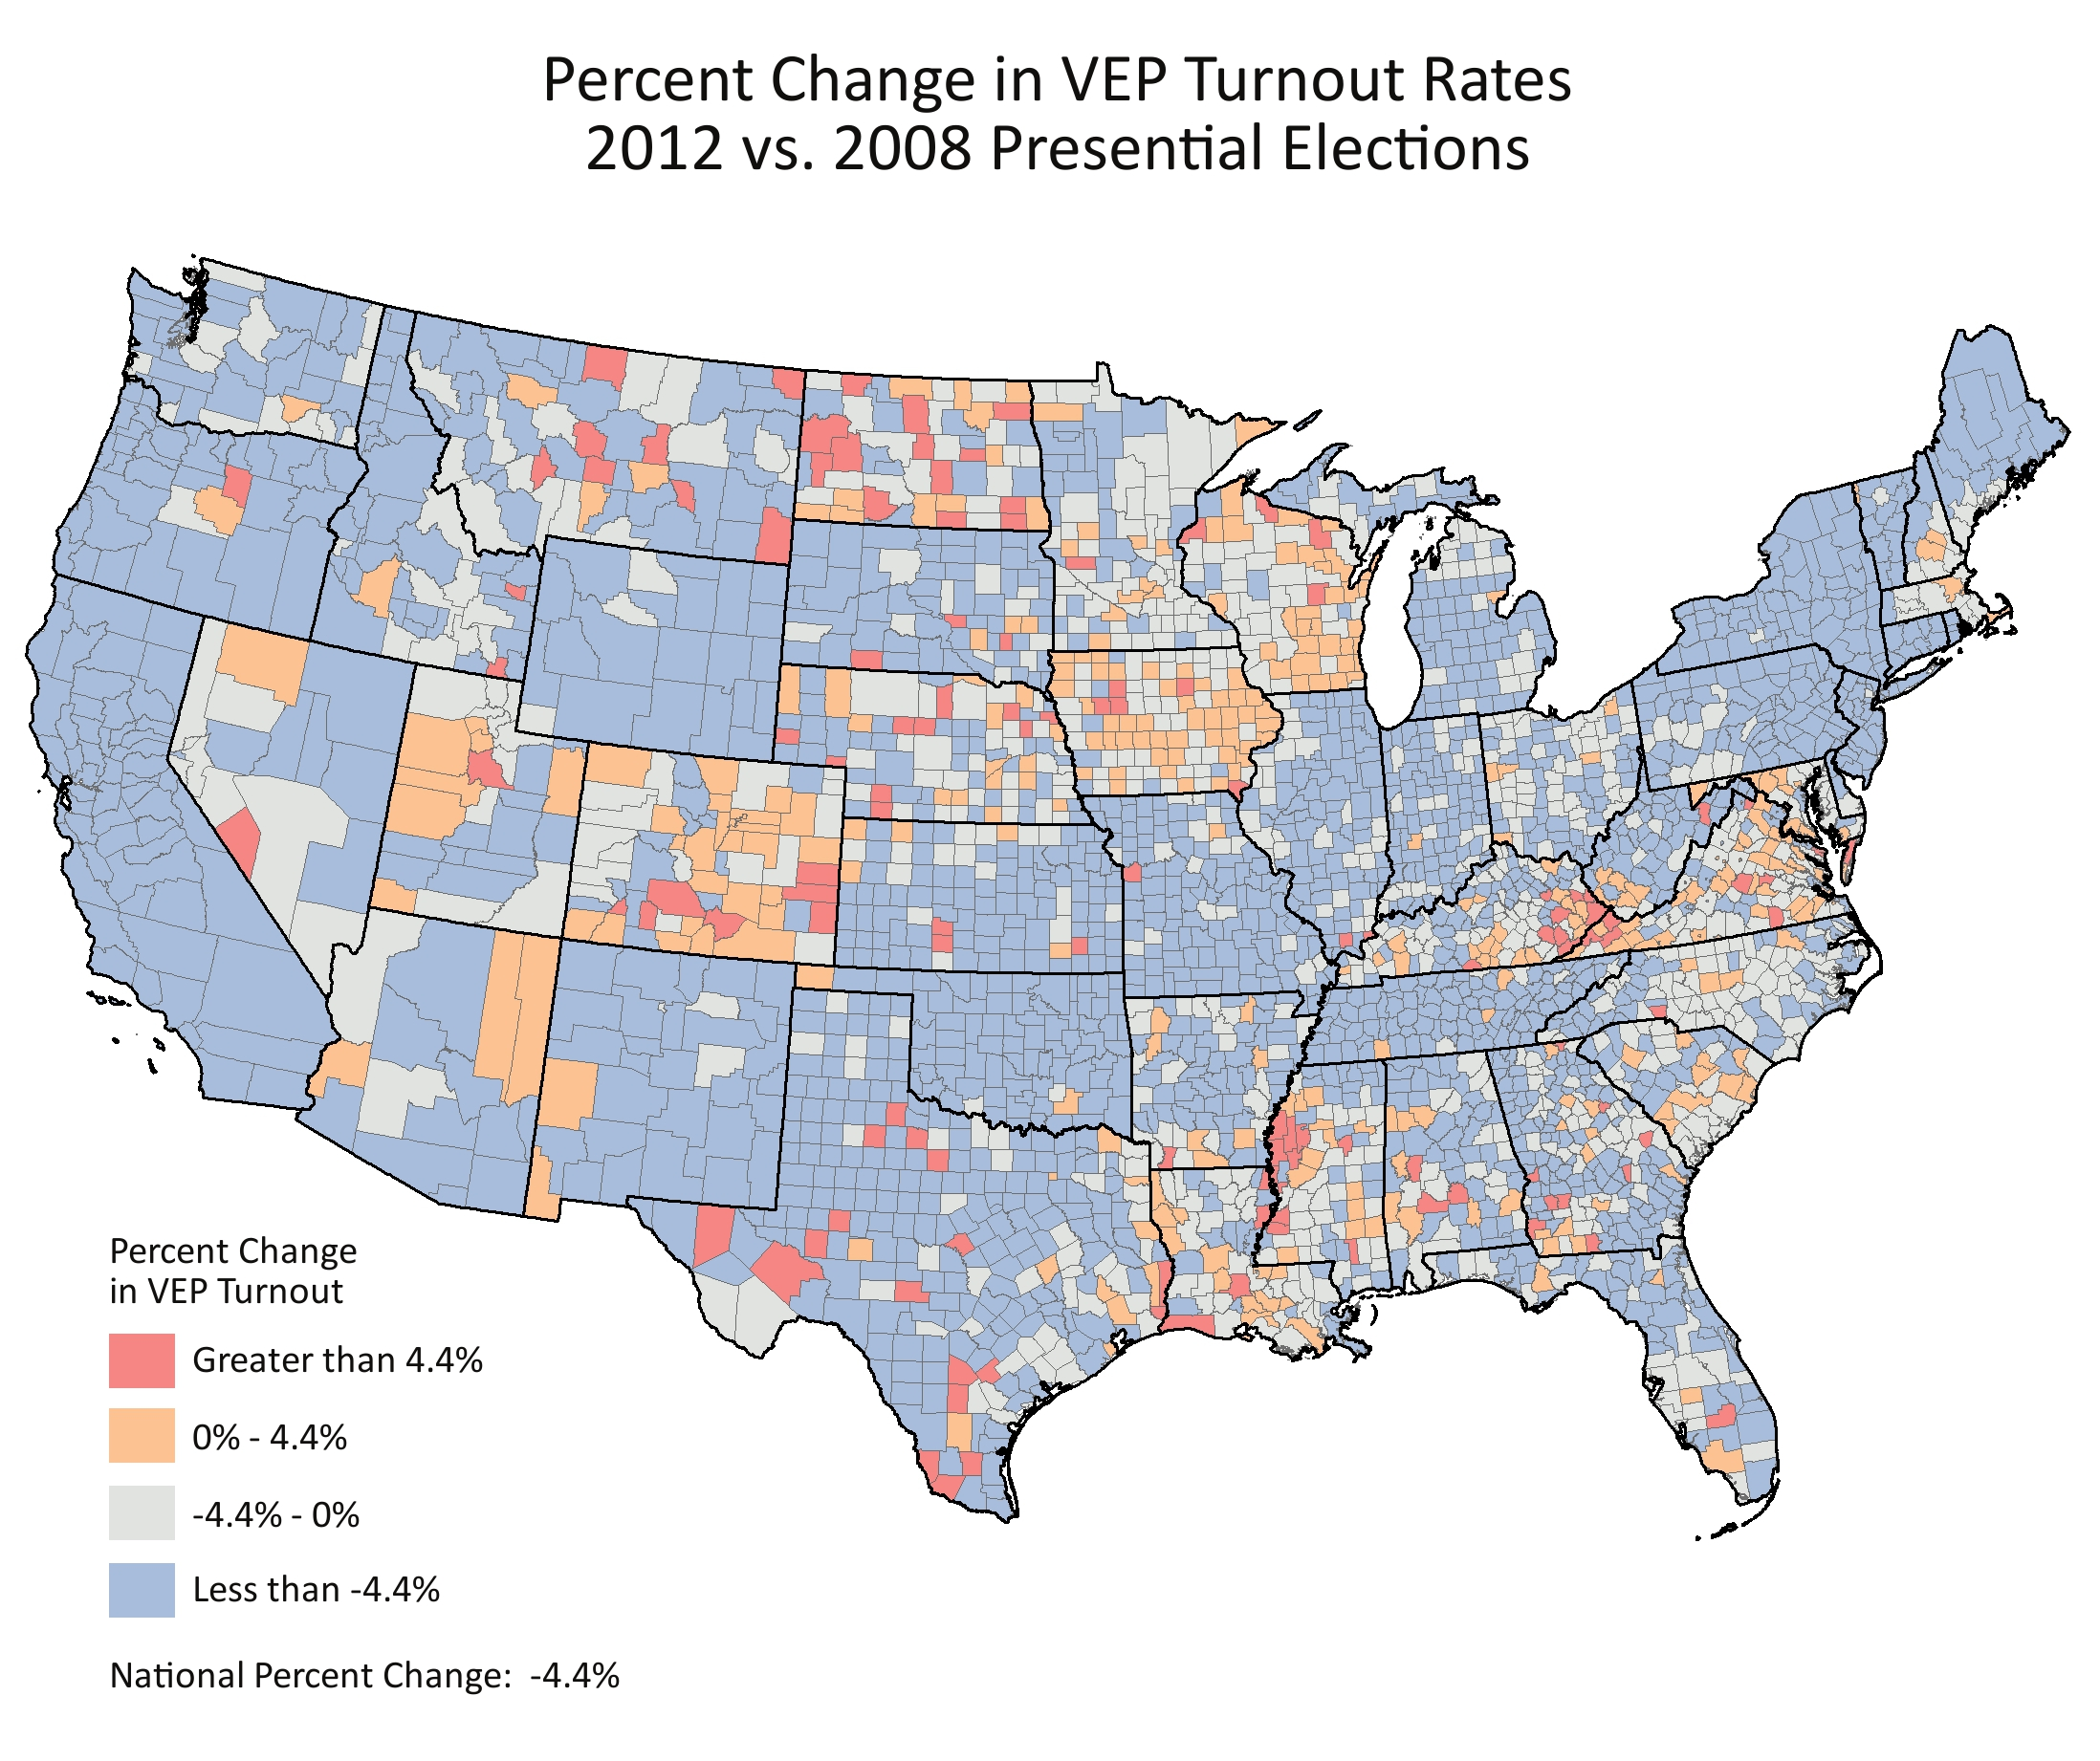 Percent Change in Turnout Rates, 2012 vs. 2008 Presential Elections